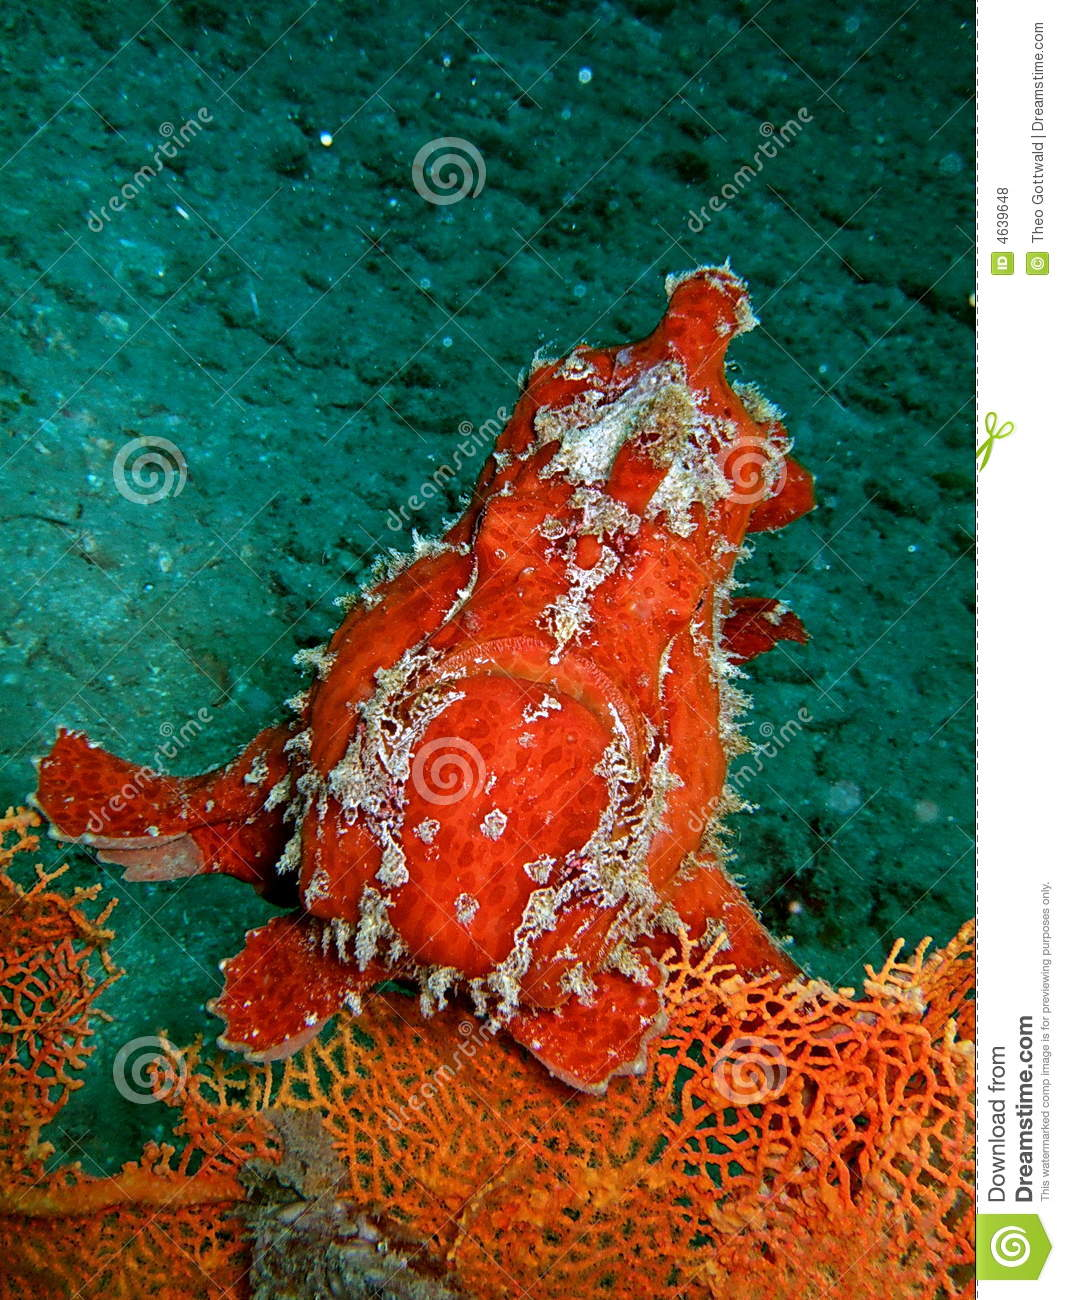 Red Dangerous Fish In The Coral Reef Stock Photo - Image of fish ...